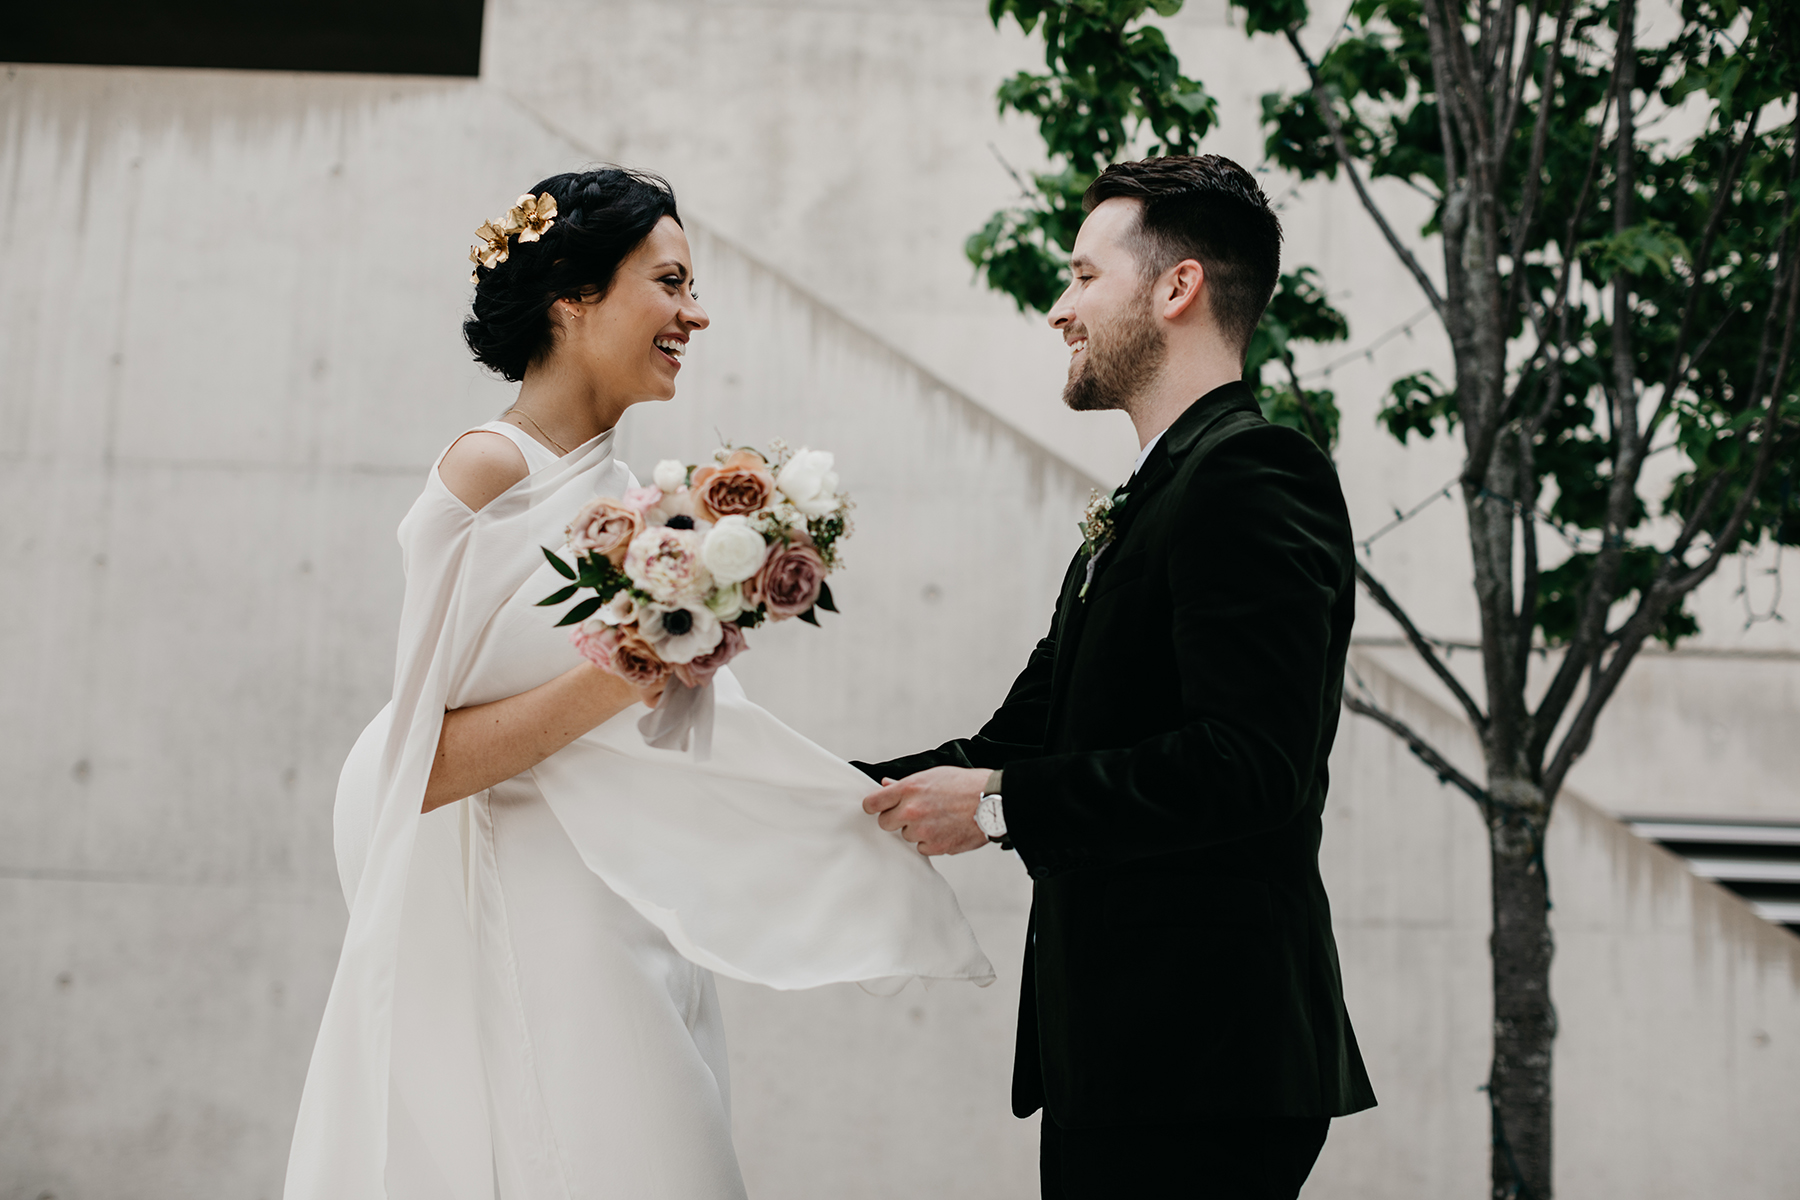 TYLER + KENDRA MARRIED IN MAY 2017 (PHOTOGRAPHY BY:  ARIELLE TEFT )